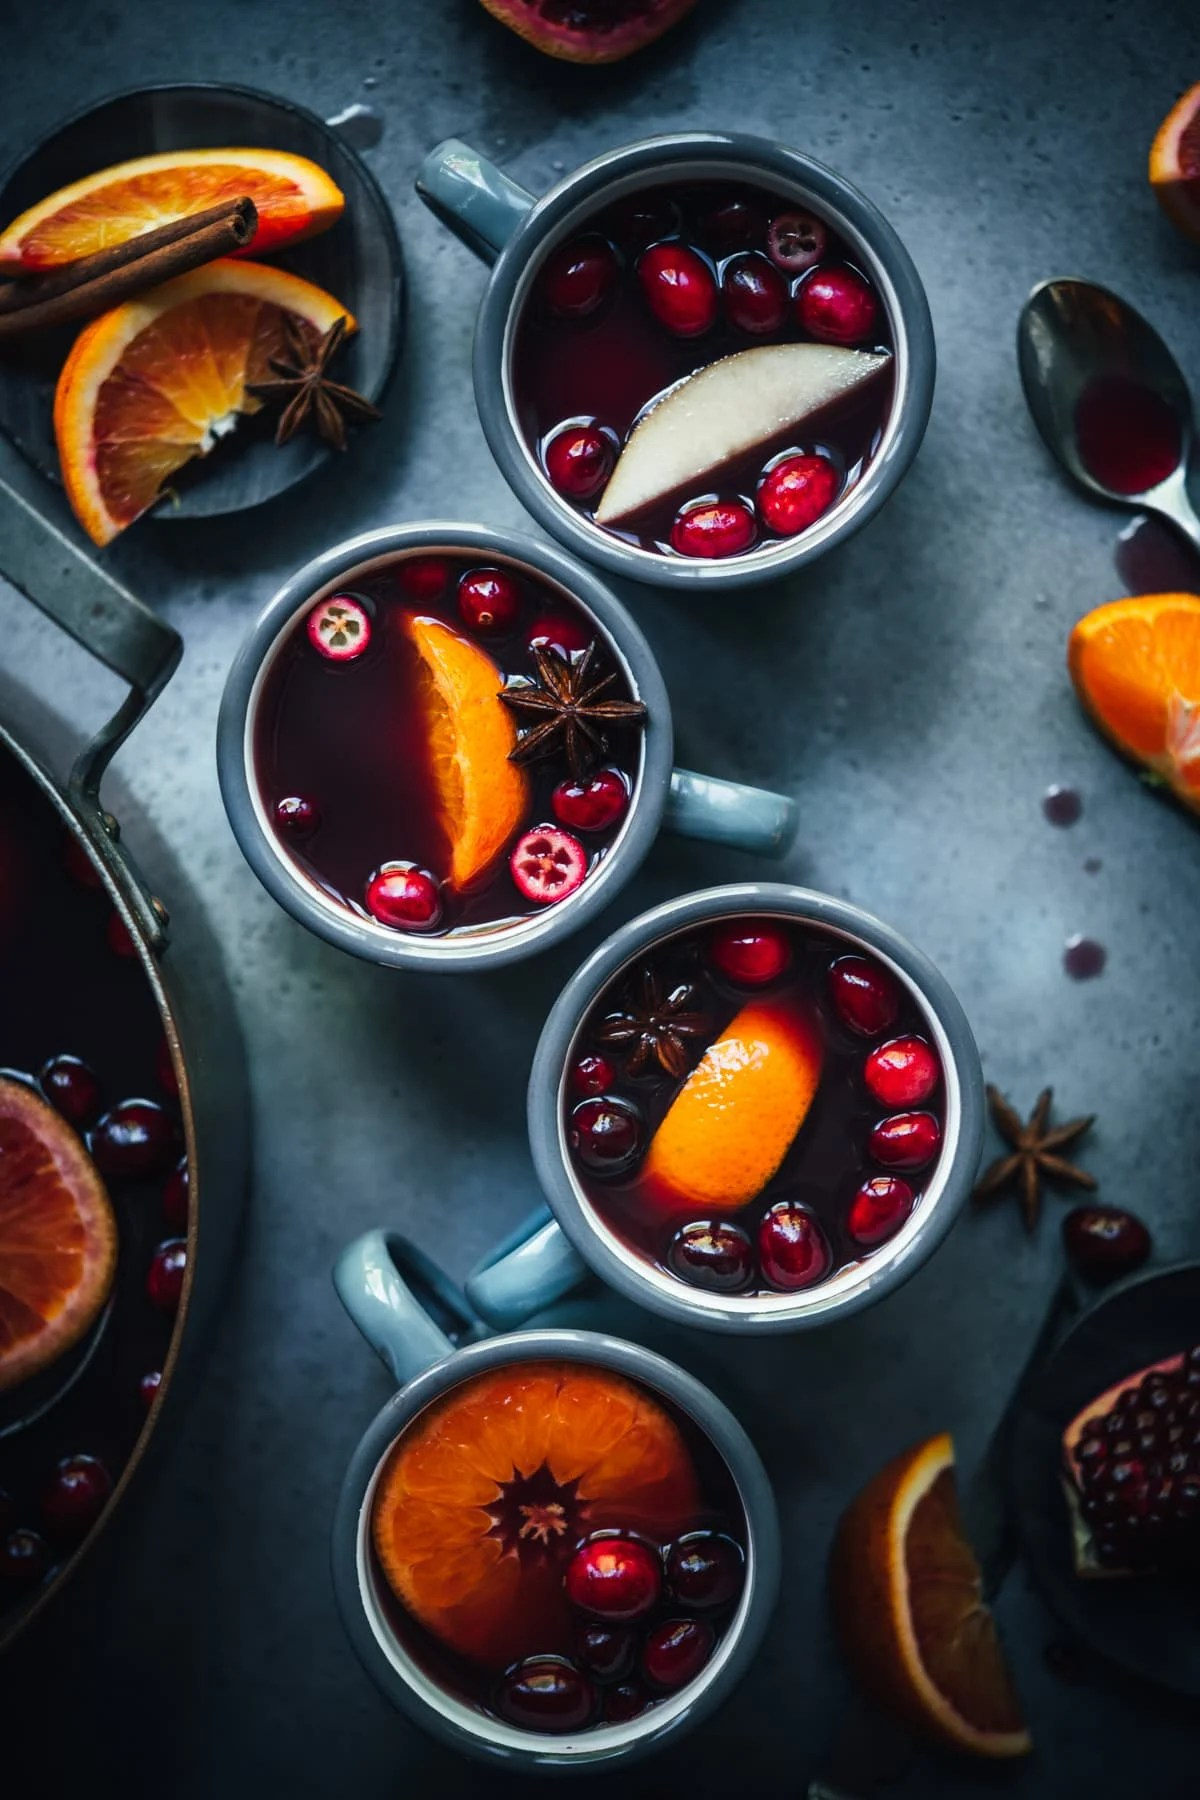 overhead view of homemade citrus mulled wine in grey mugs garnished with cranberries, star anise and orange slices.